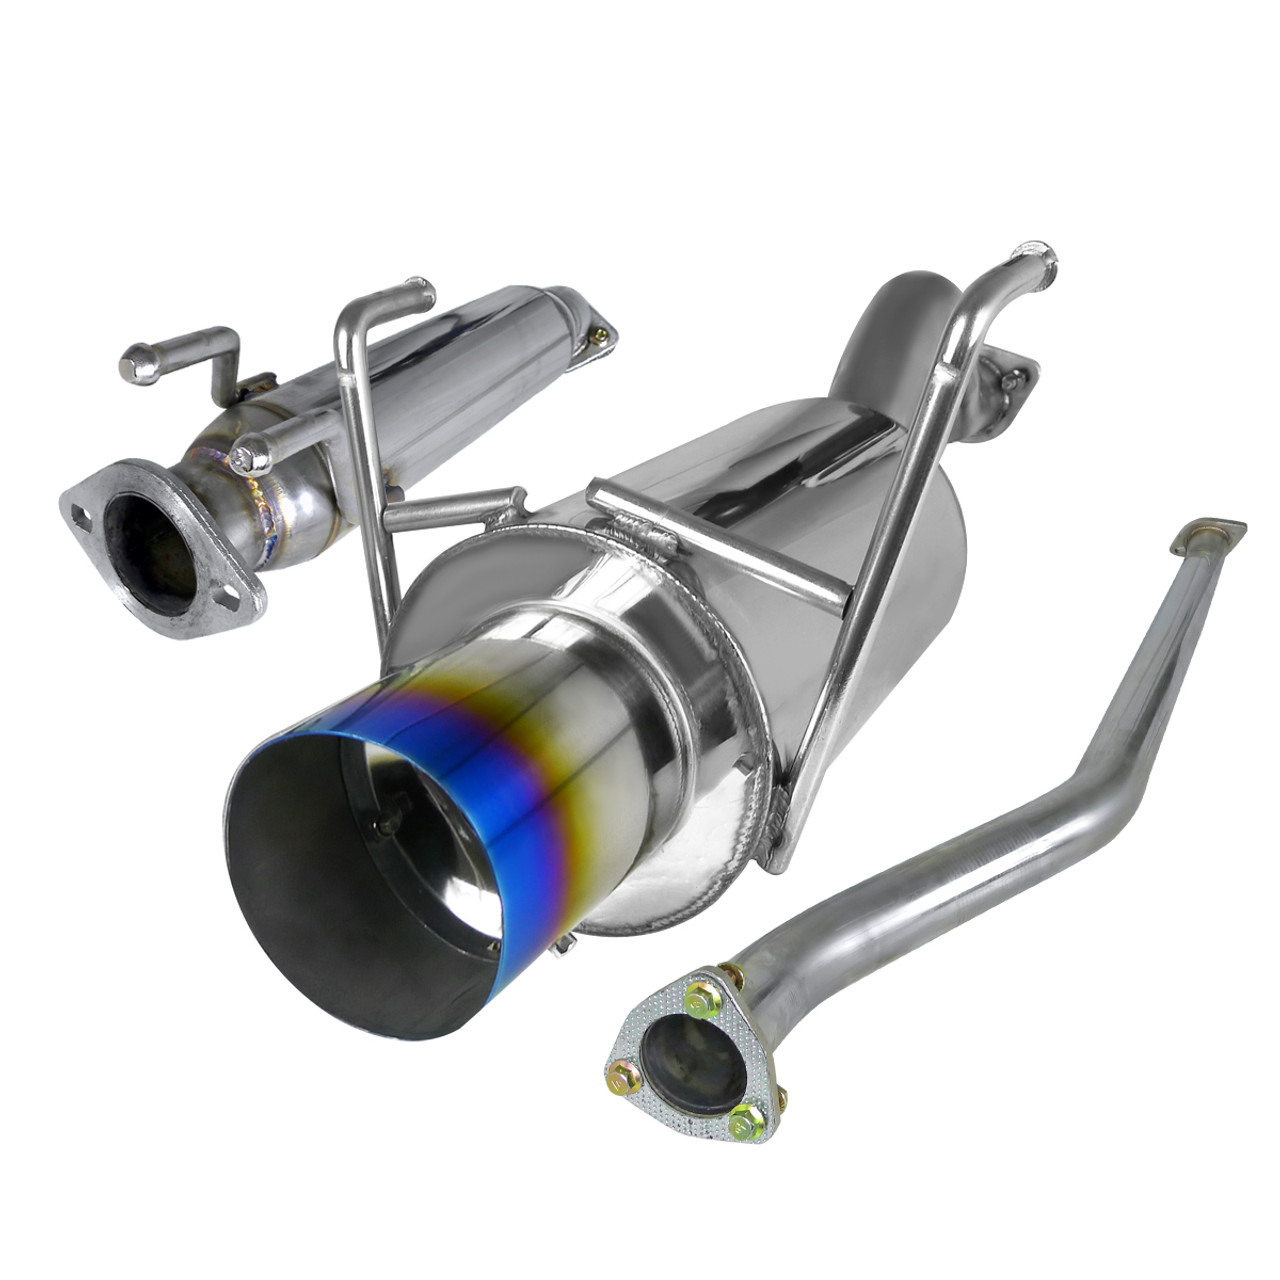 2002 2005 honda civic si hatchback t 304 stainless steel n1 style catback exhaust system w burnt tip